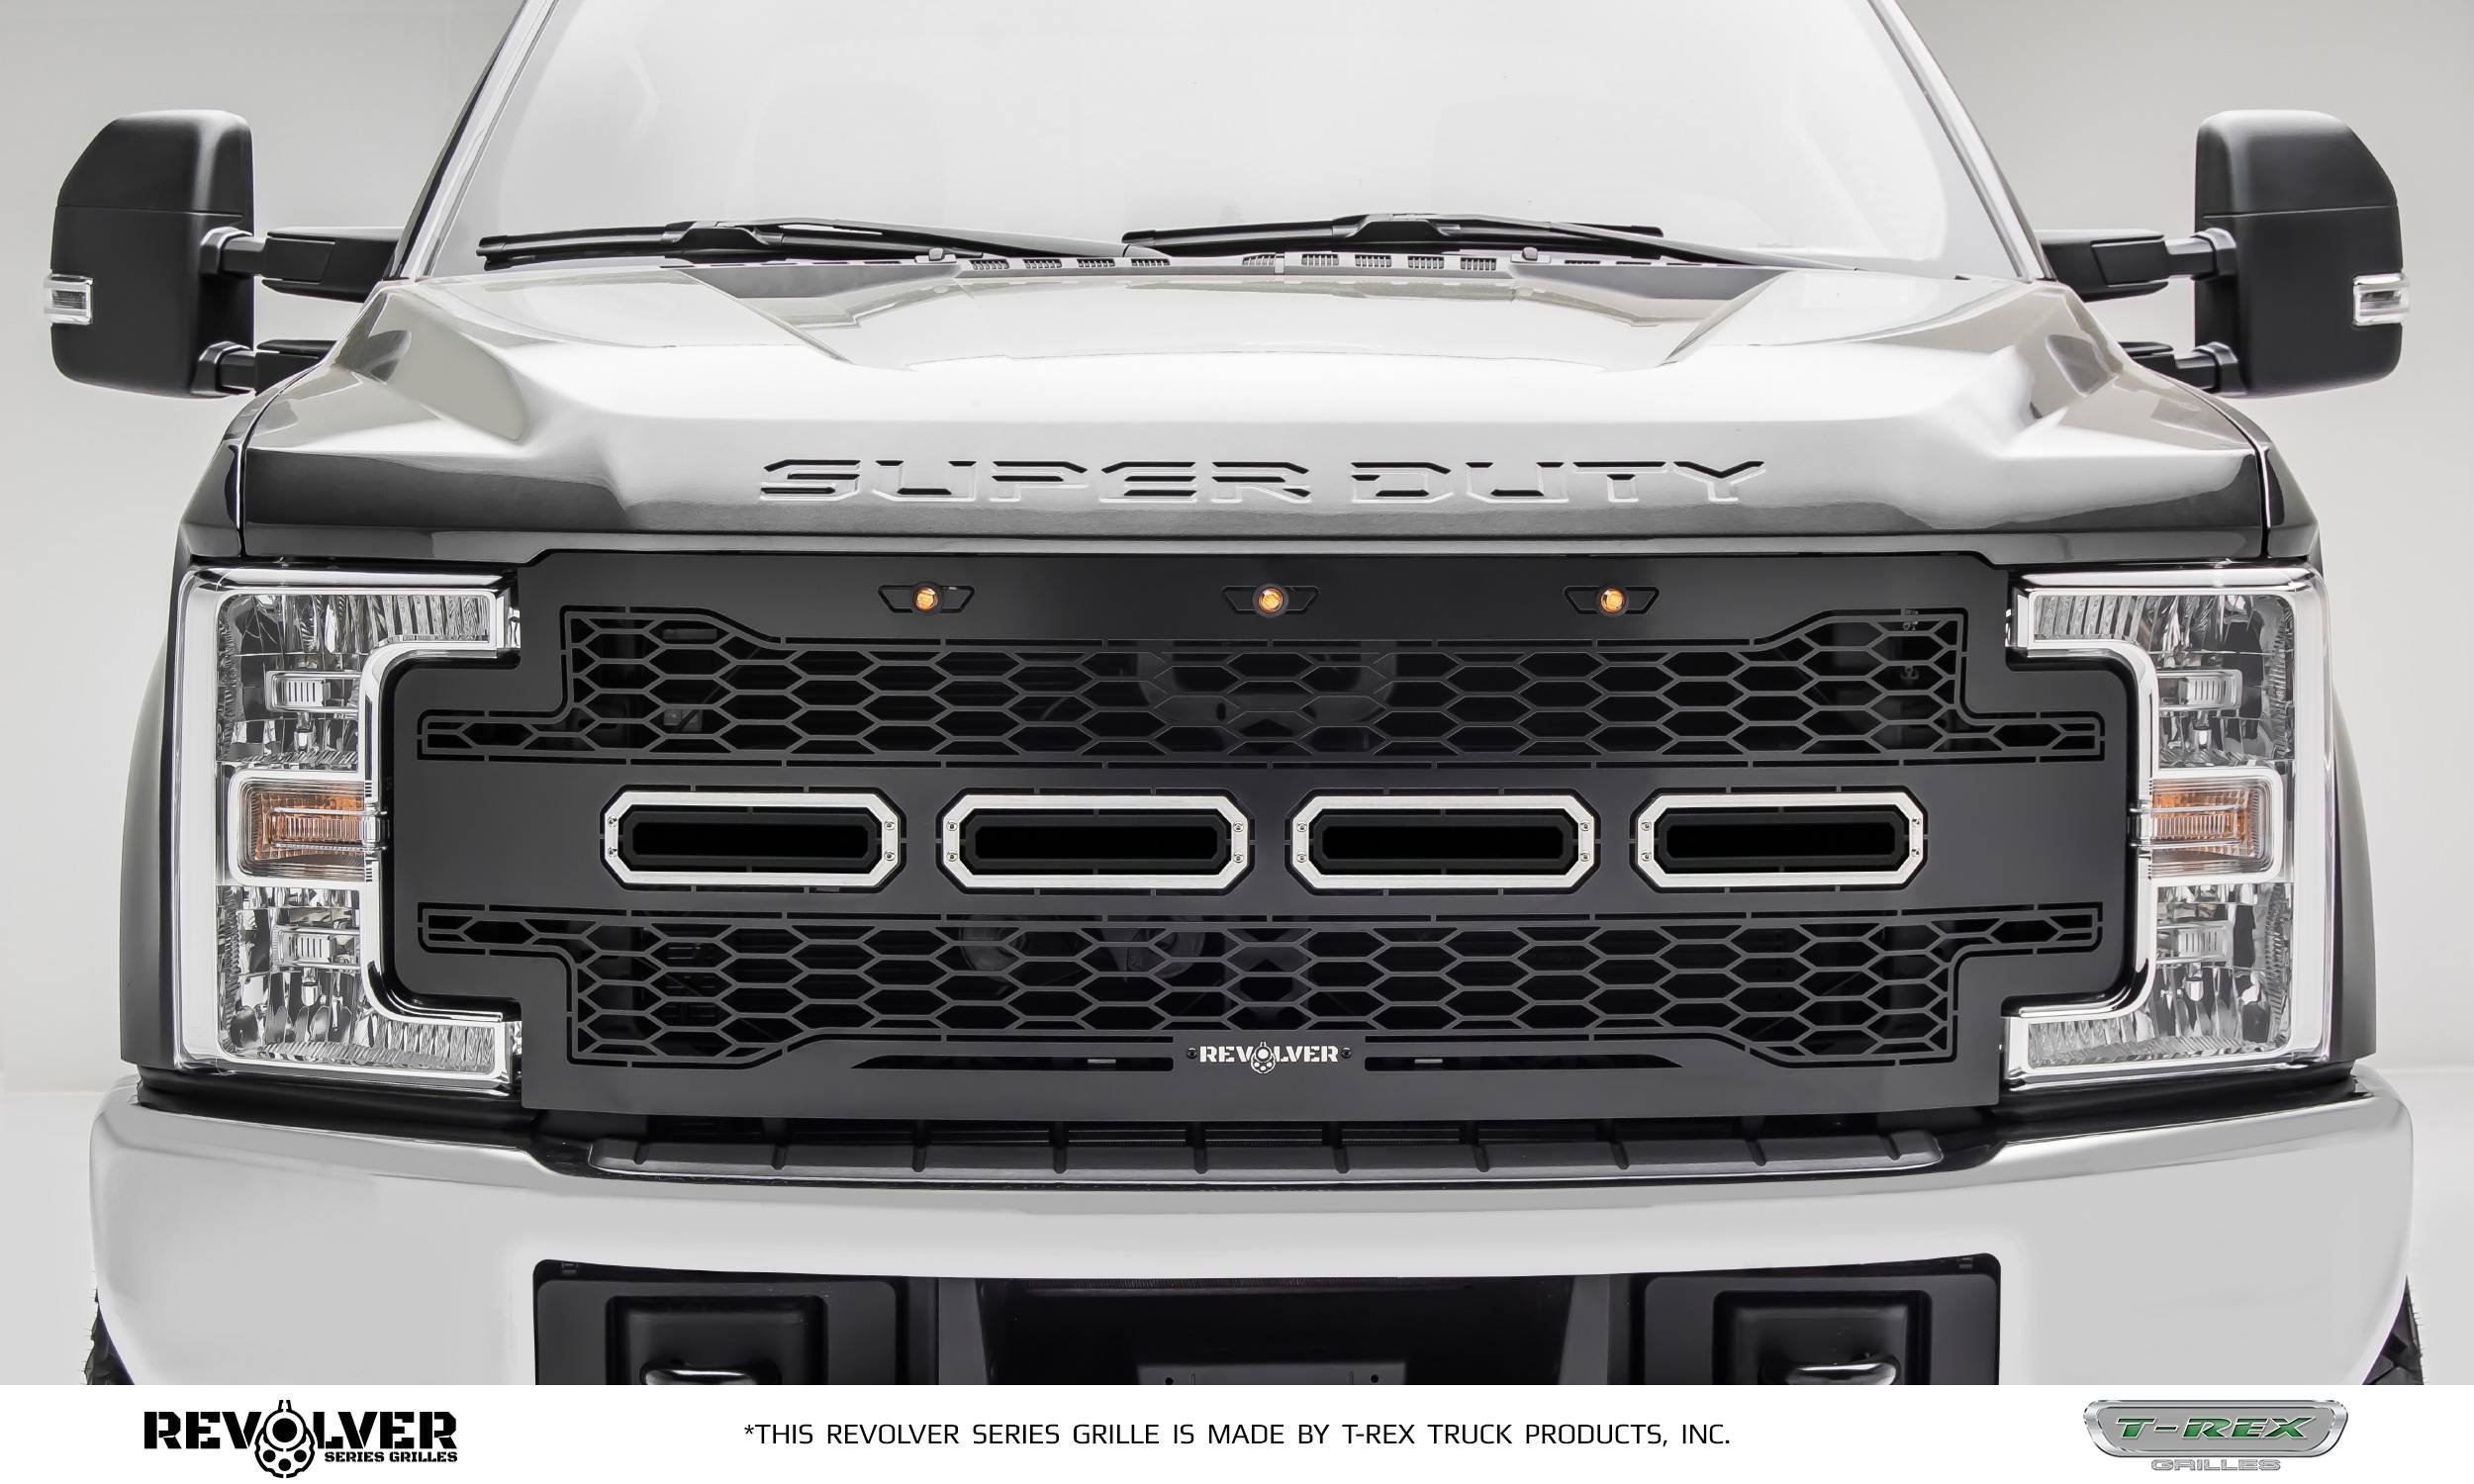 T-REX GRILLES - 2017-2019 Super Duty Revolver Grille, Black, 1 Pc, Replacement, Chrome Studs, Does Not Fit Vehicles with Camera - PN #6515711